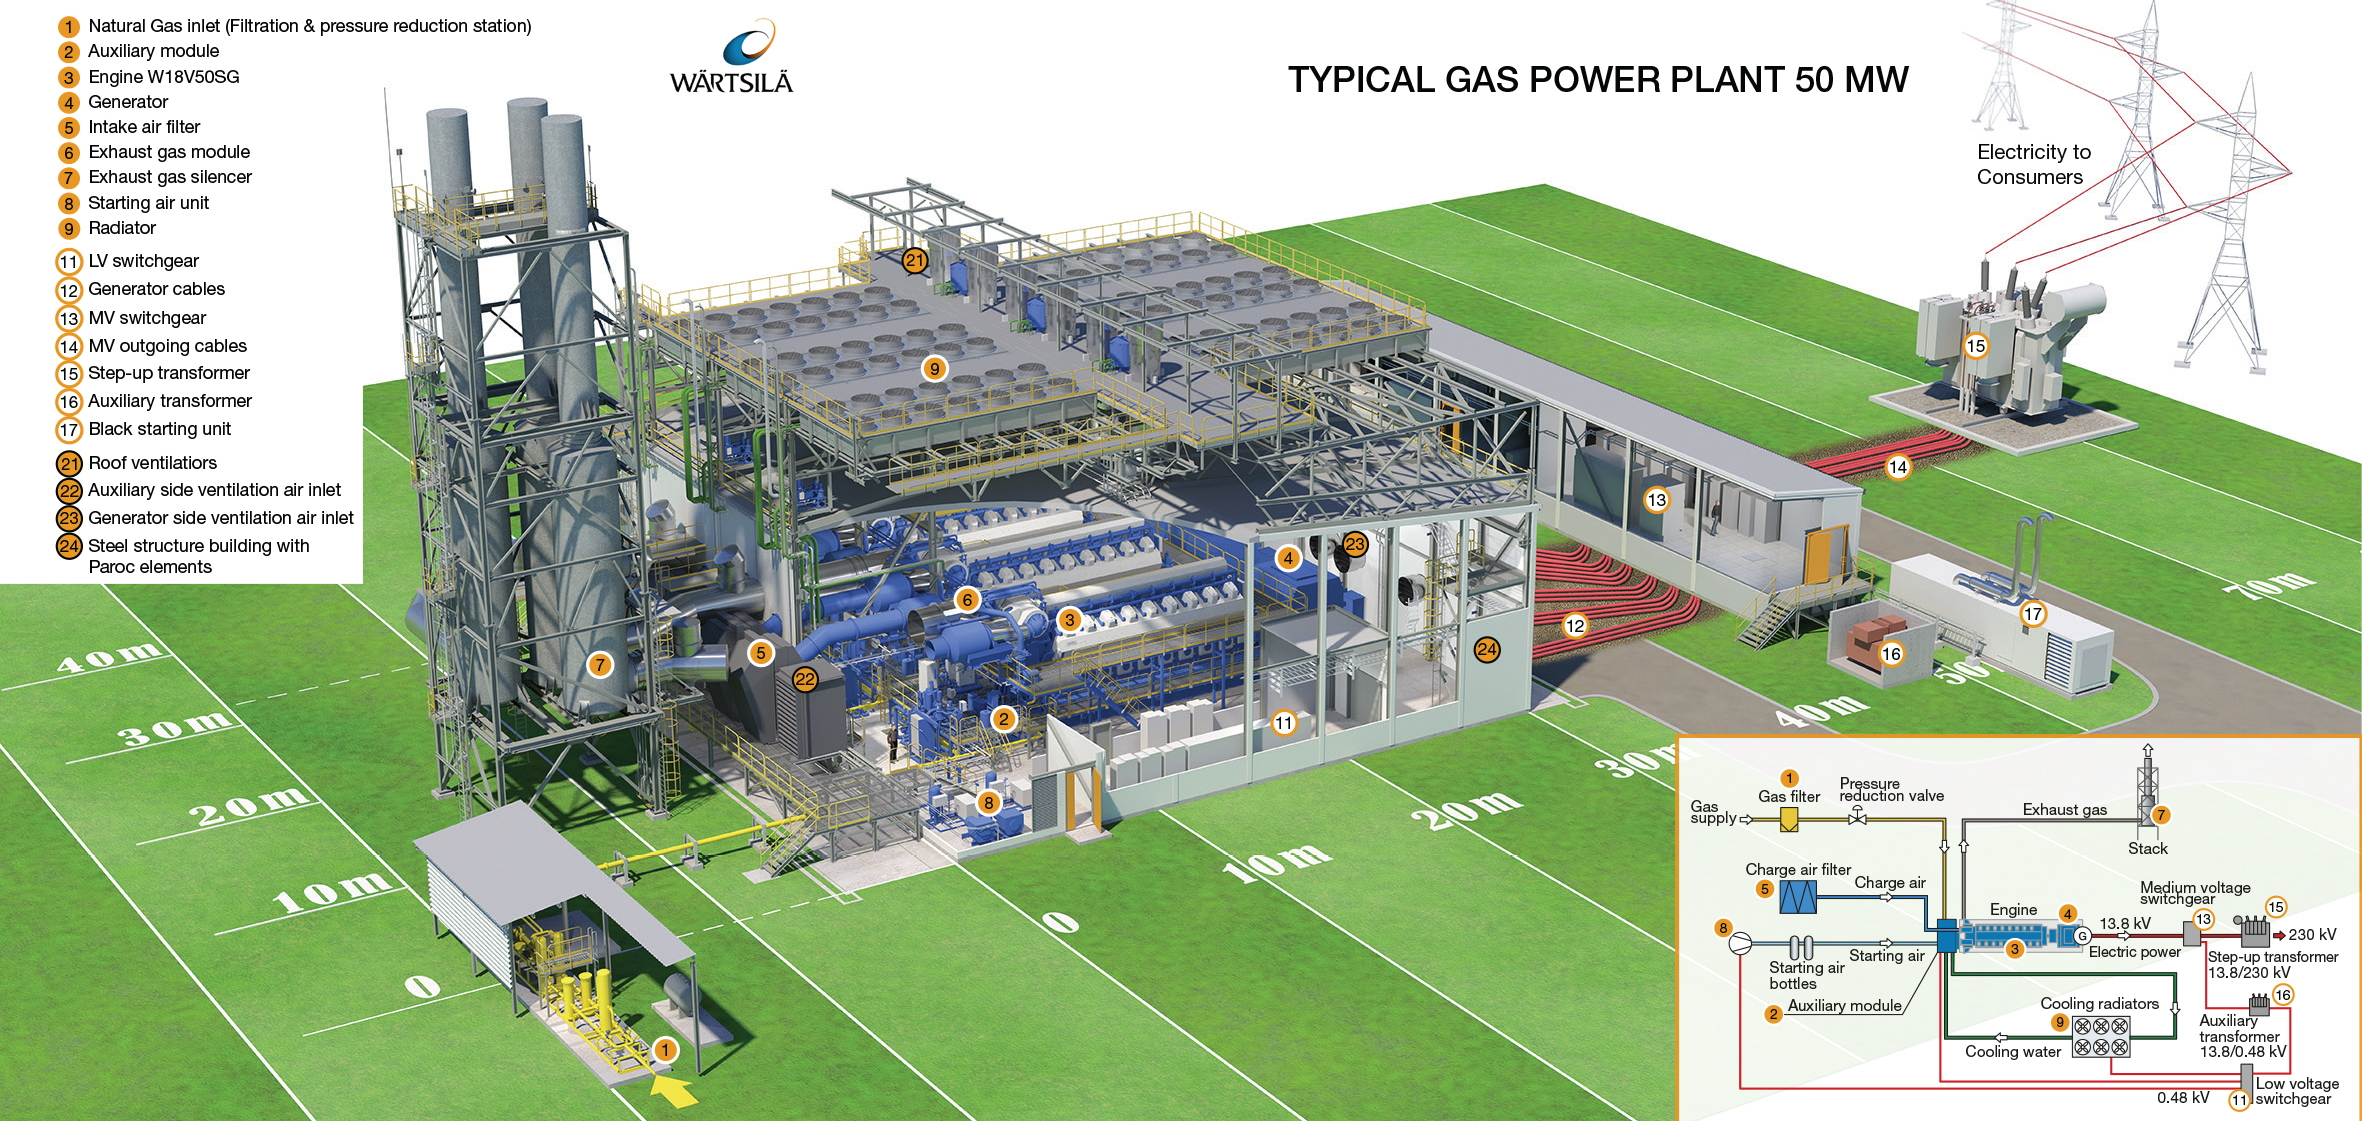 bined Cycle Plant for Power Generation Introduction